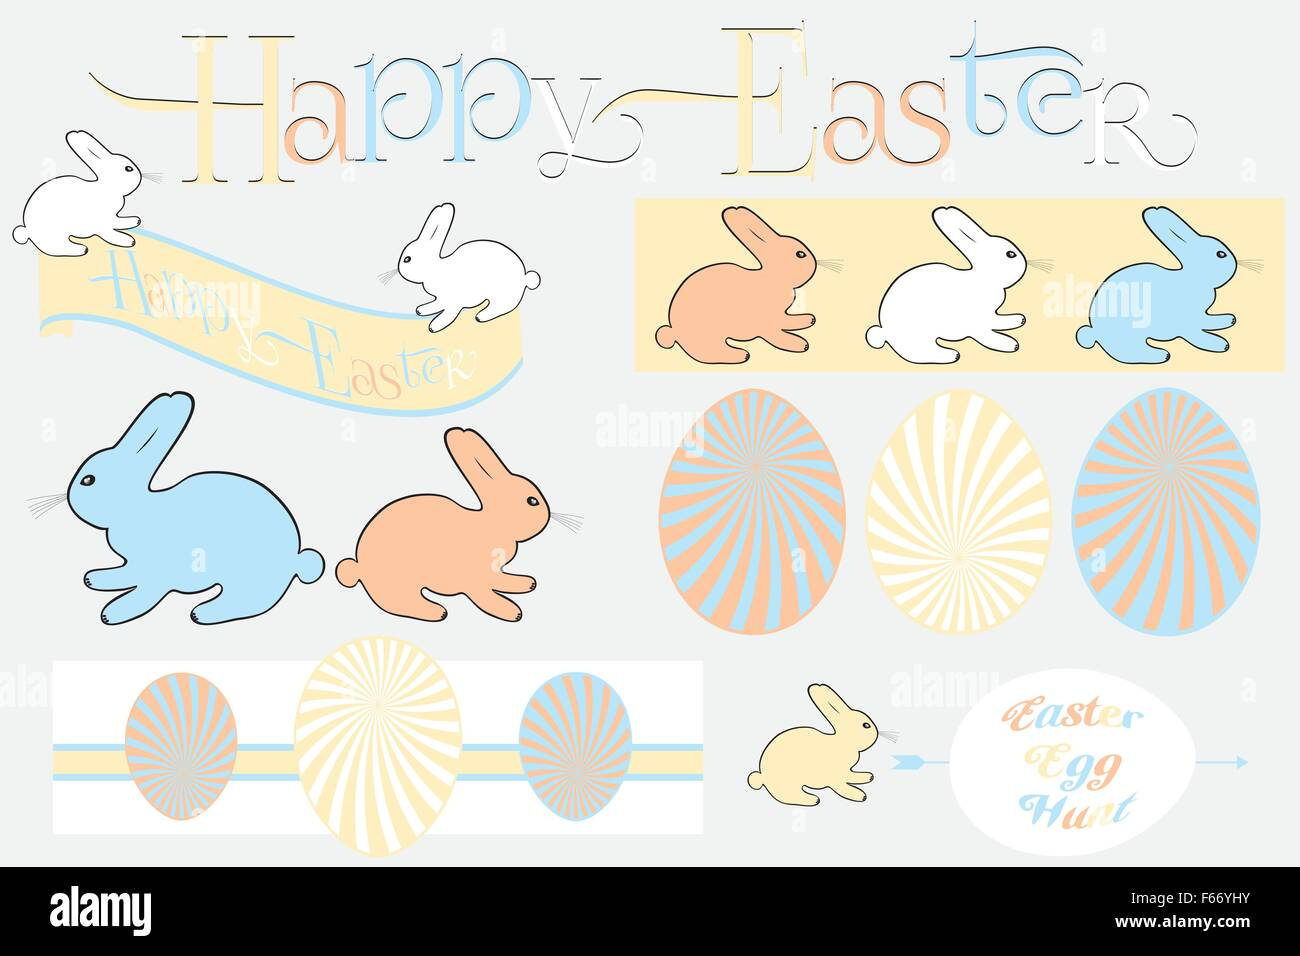 Happy easter design elements im retro look isolated - useful for designers - Stock Vector